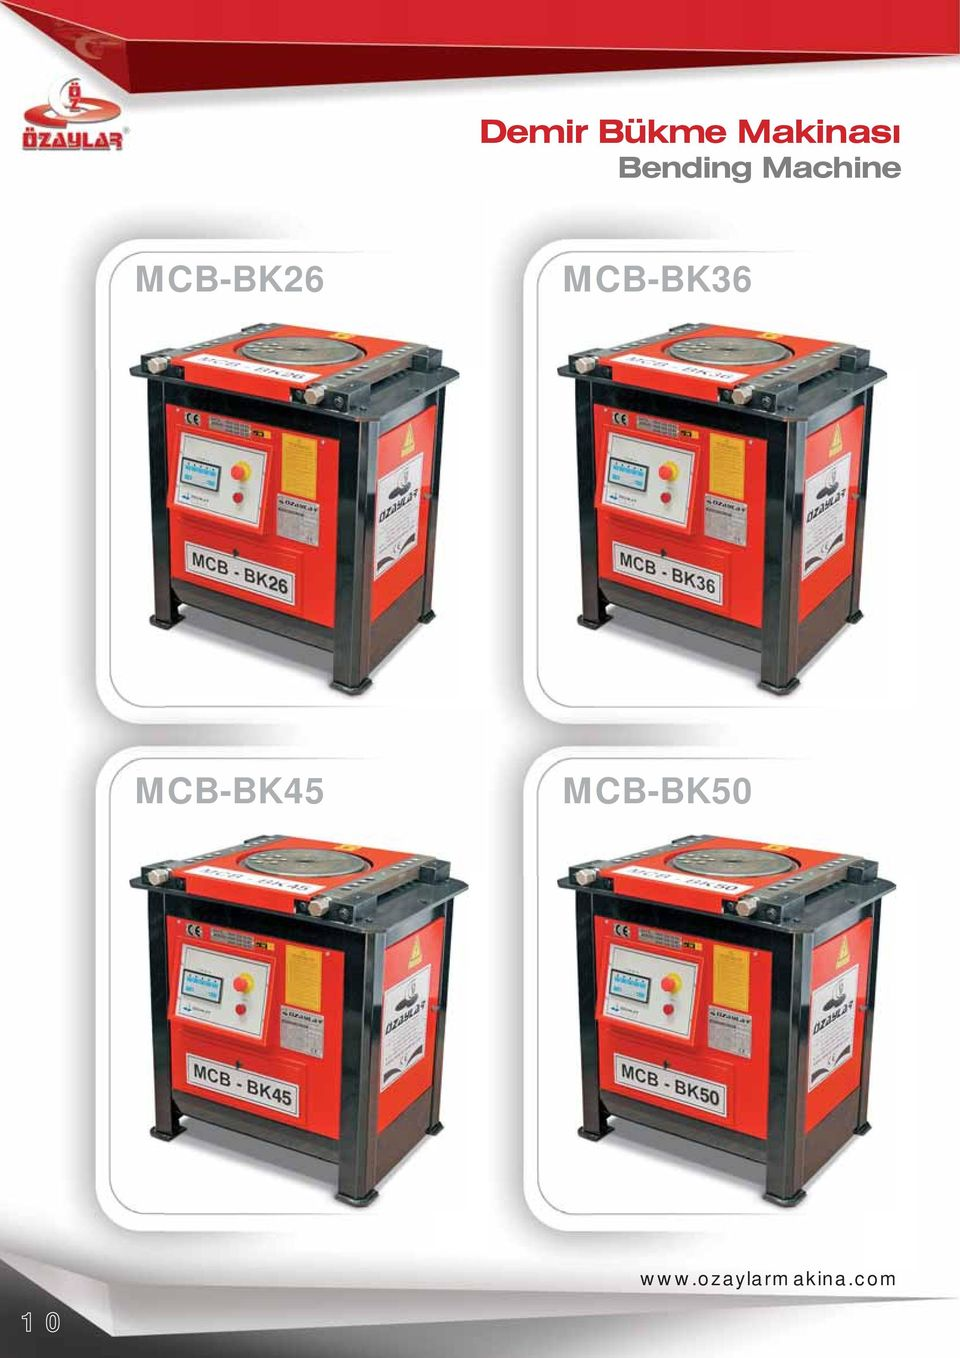 Machine MCB-BK26